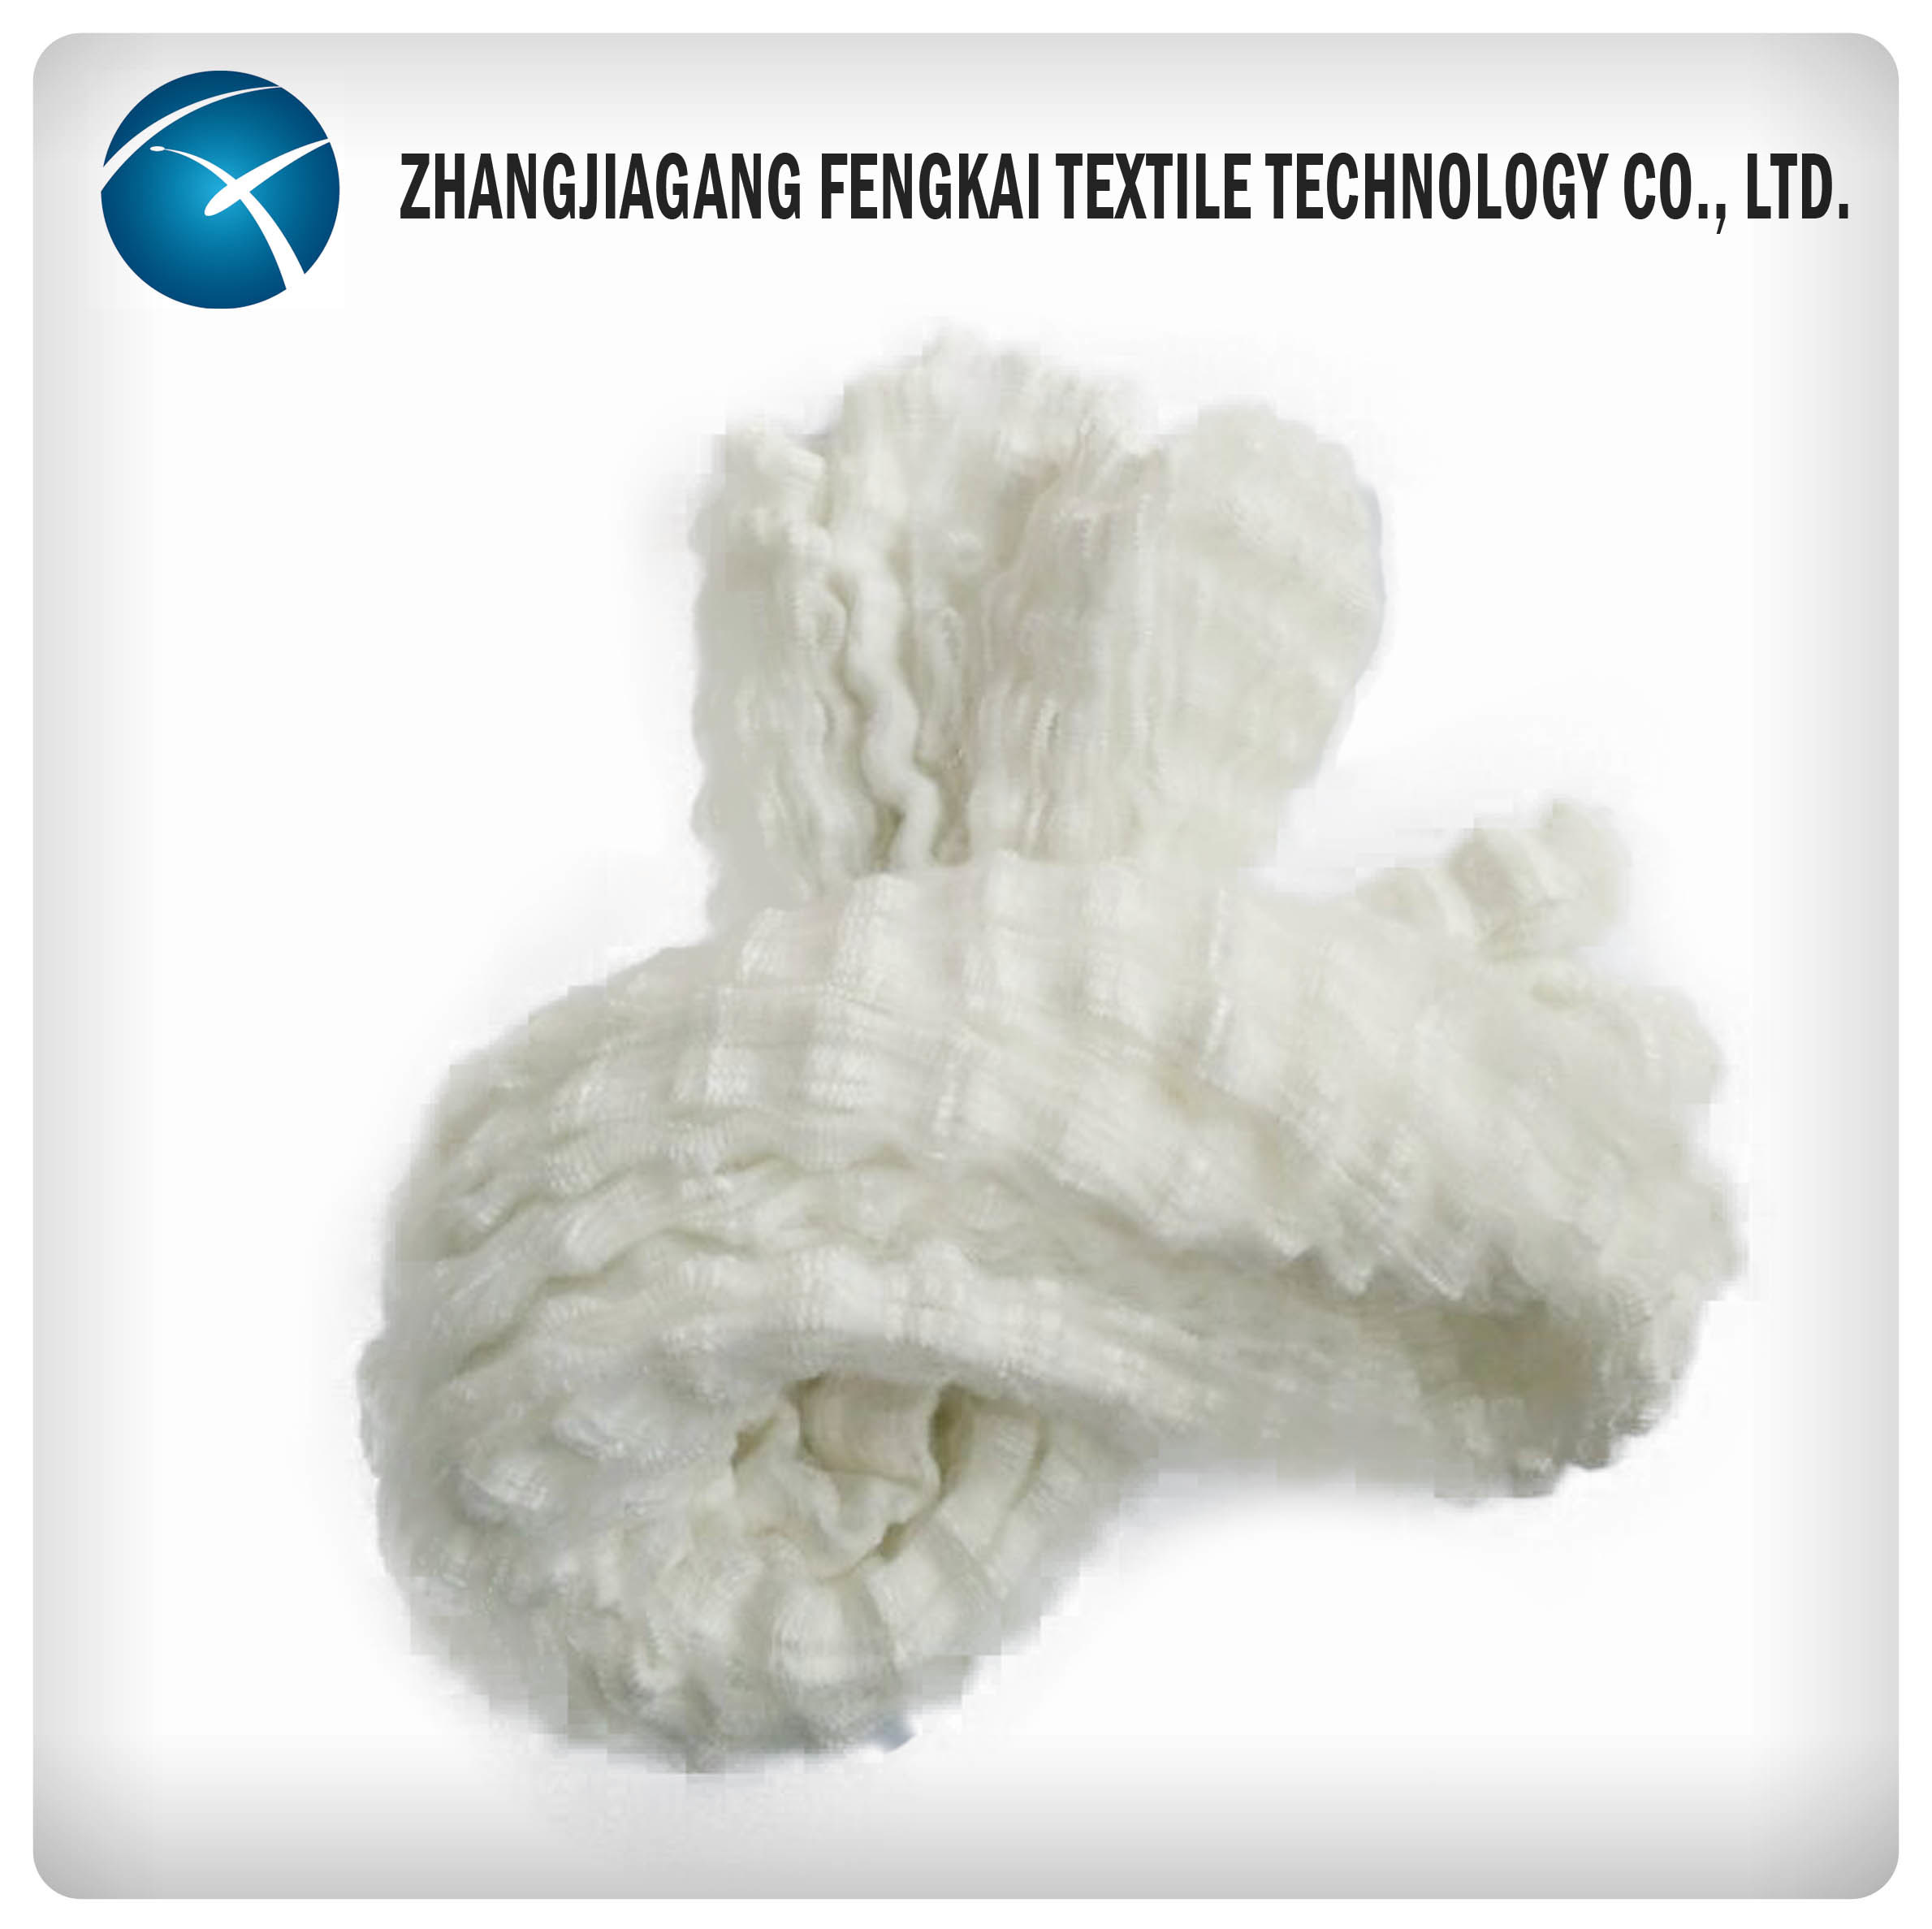 100% Polyester Tow and Polyester Top